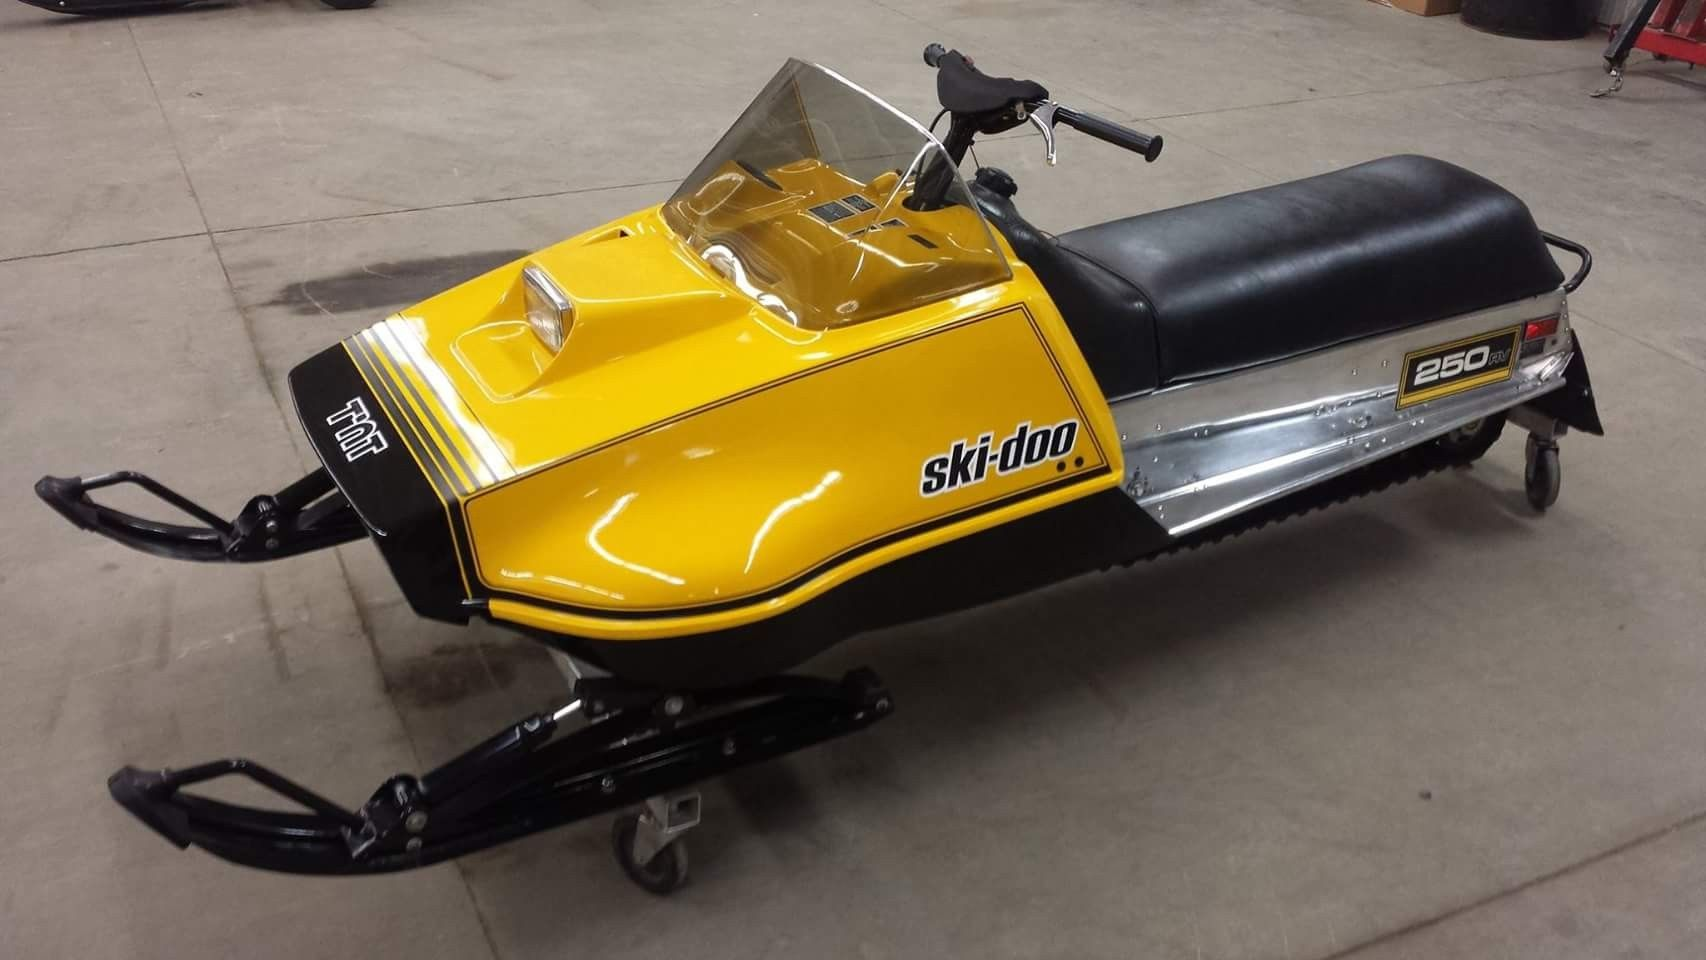 Pin By Duawis On Snowmobiles Vintage Sled Snowmobile Vintage Racing